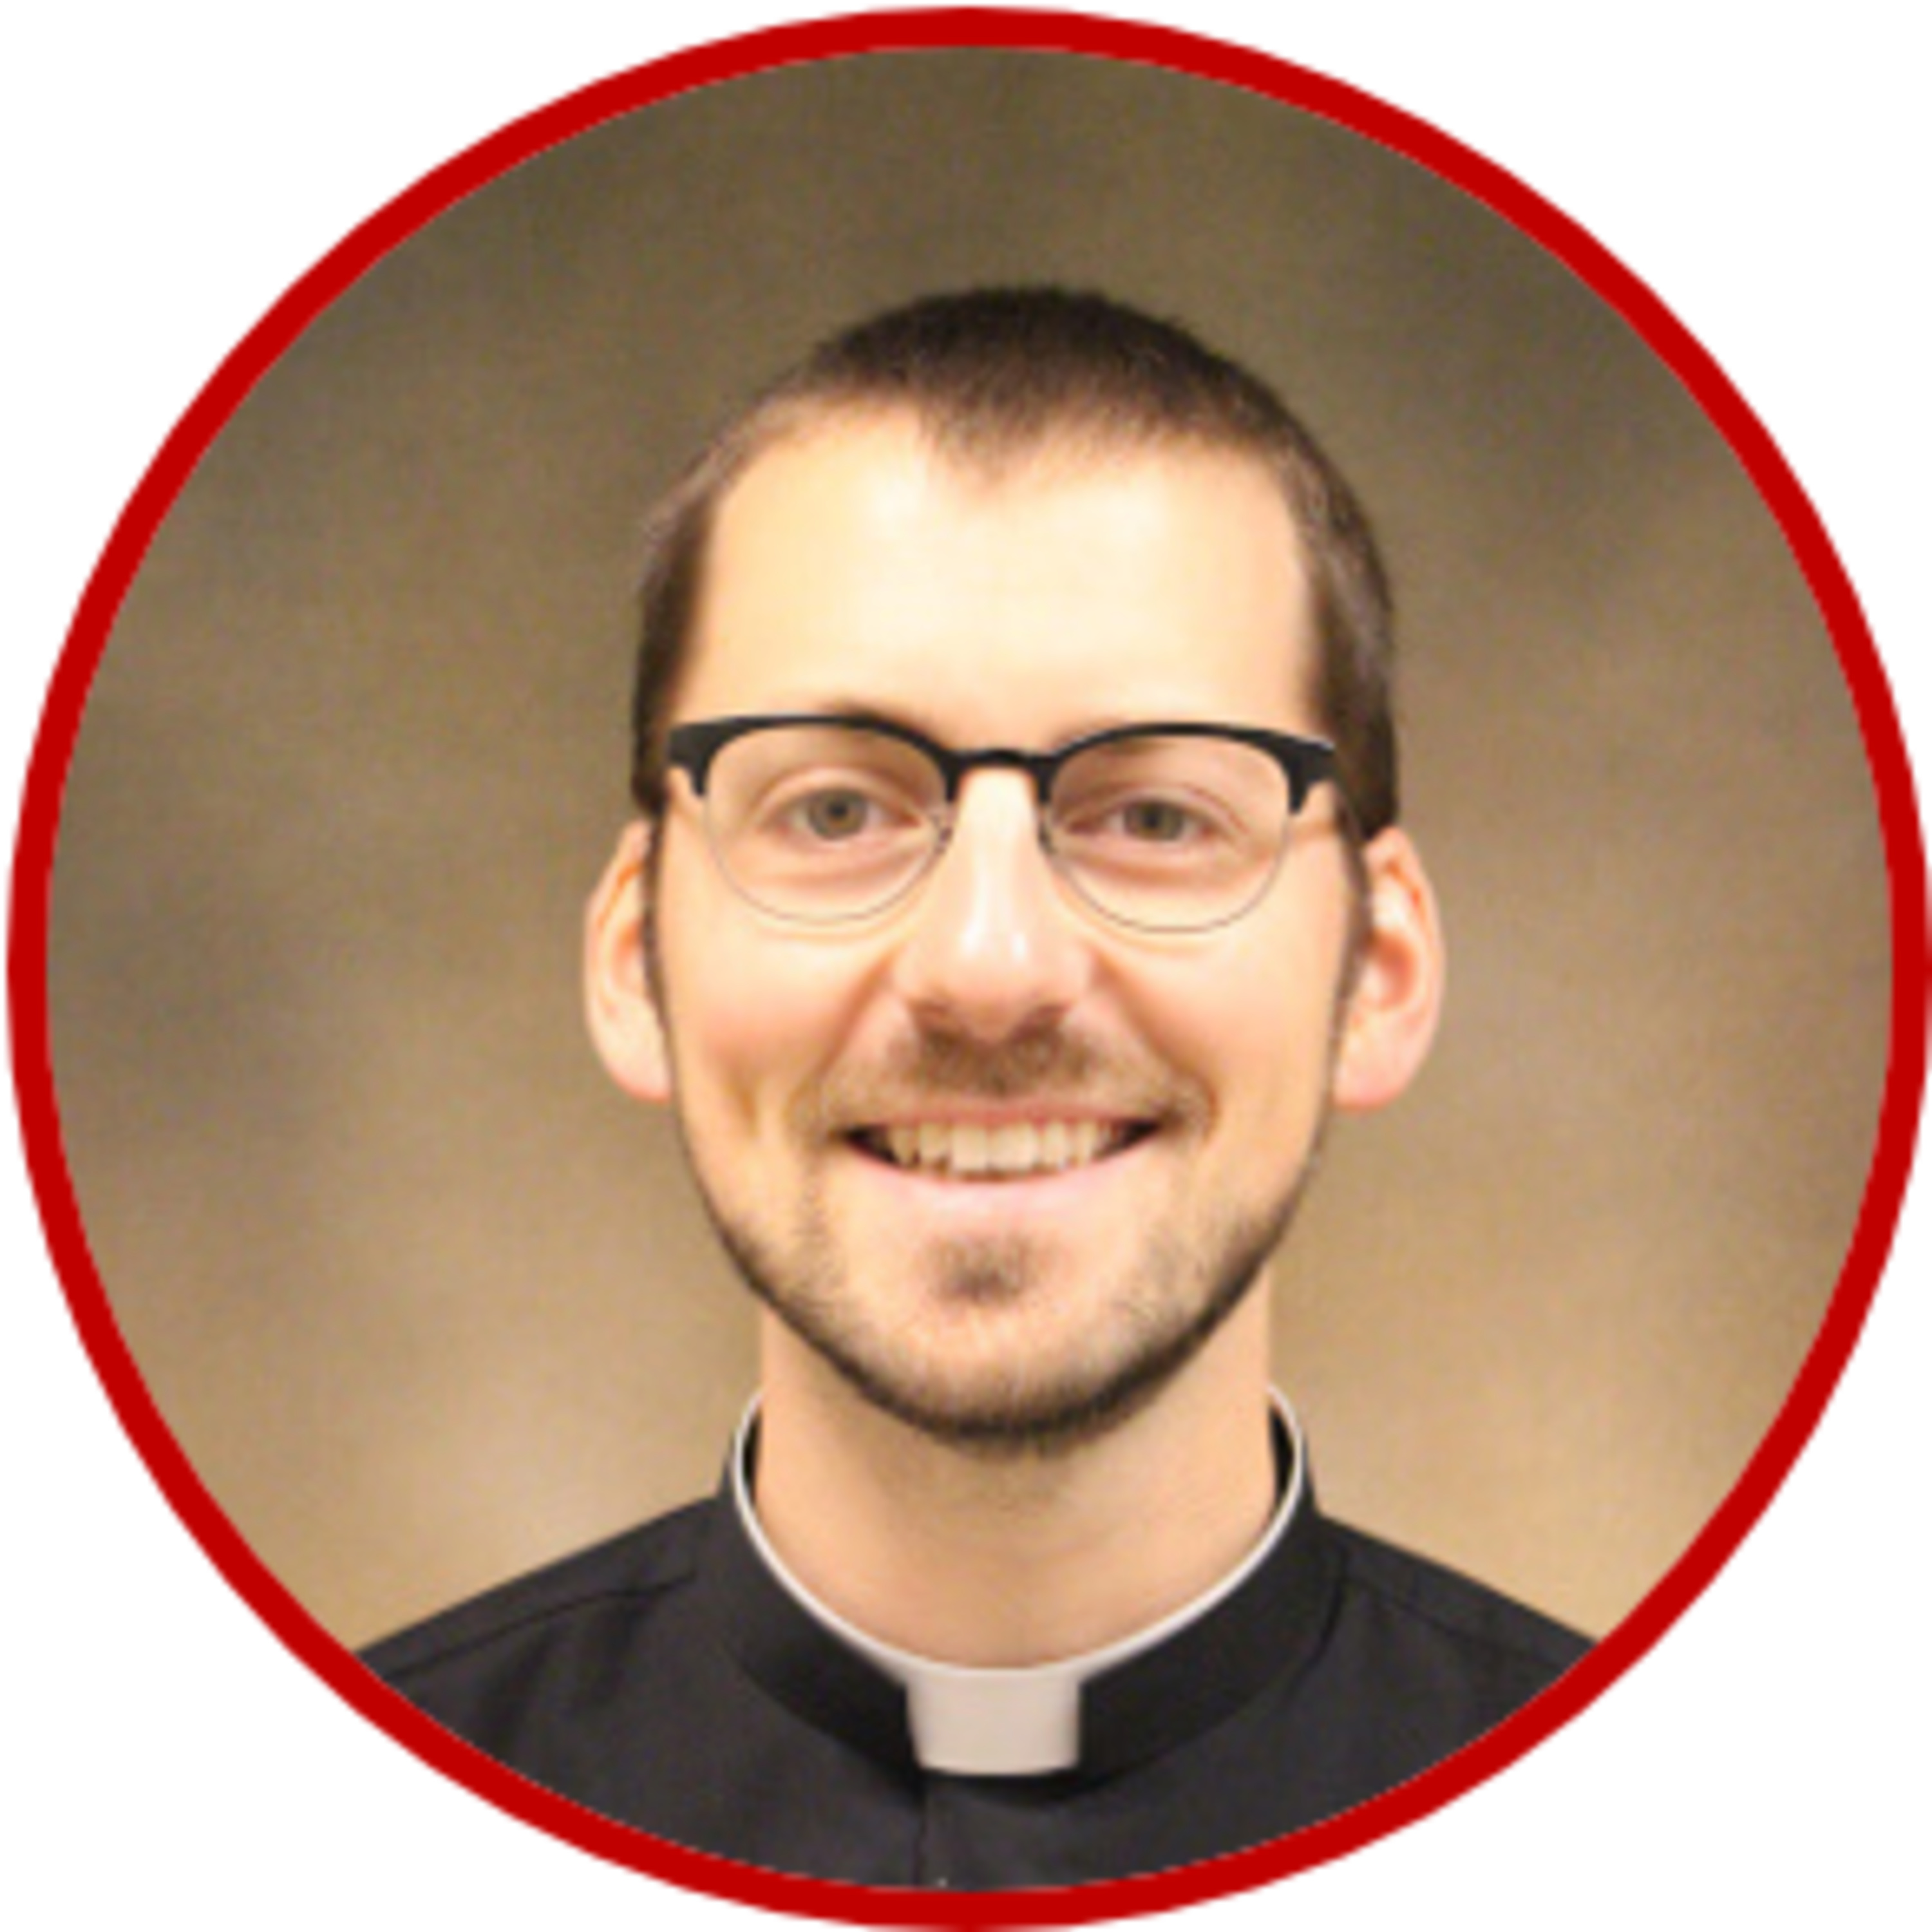 29th Sunday in Ordinary Time: Fr. Christian DeCarlo